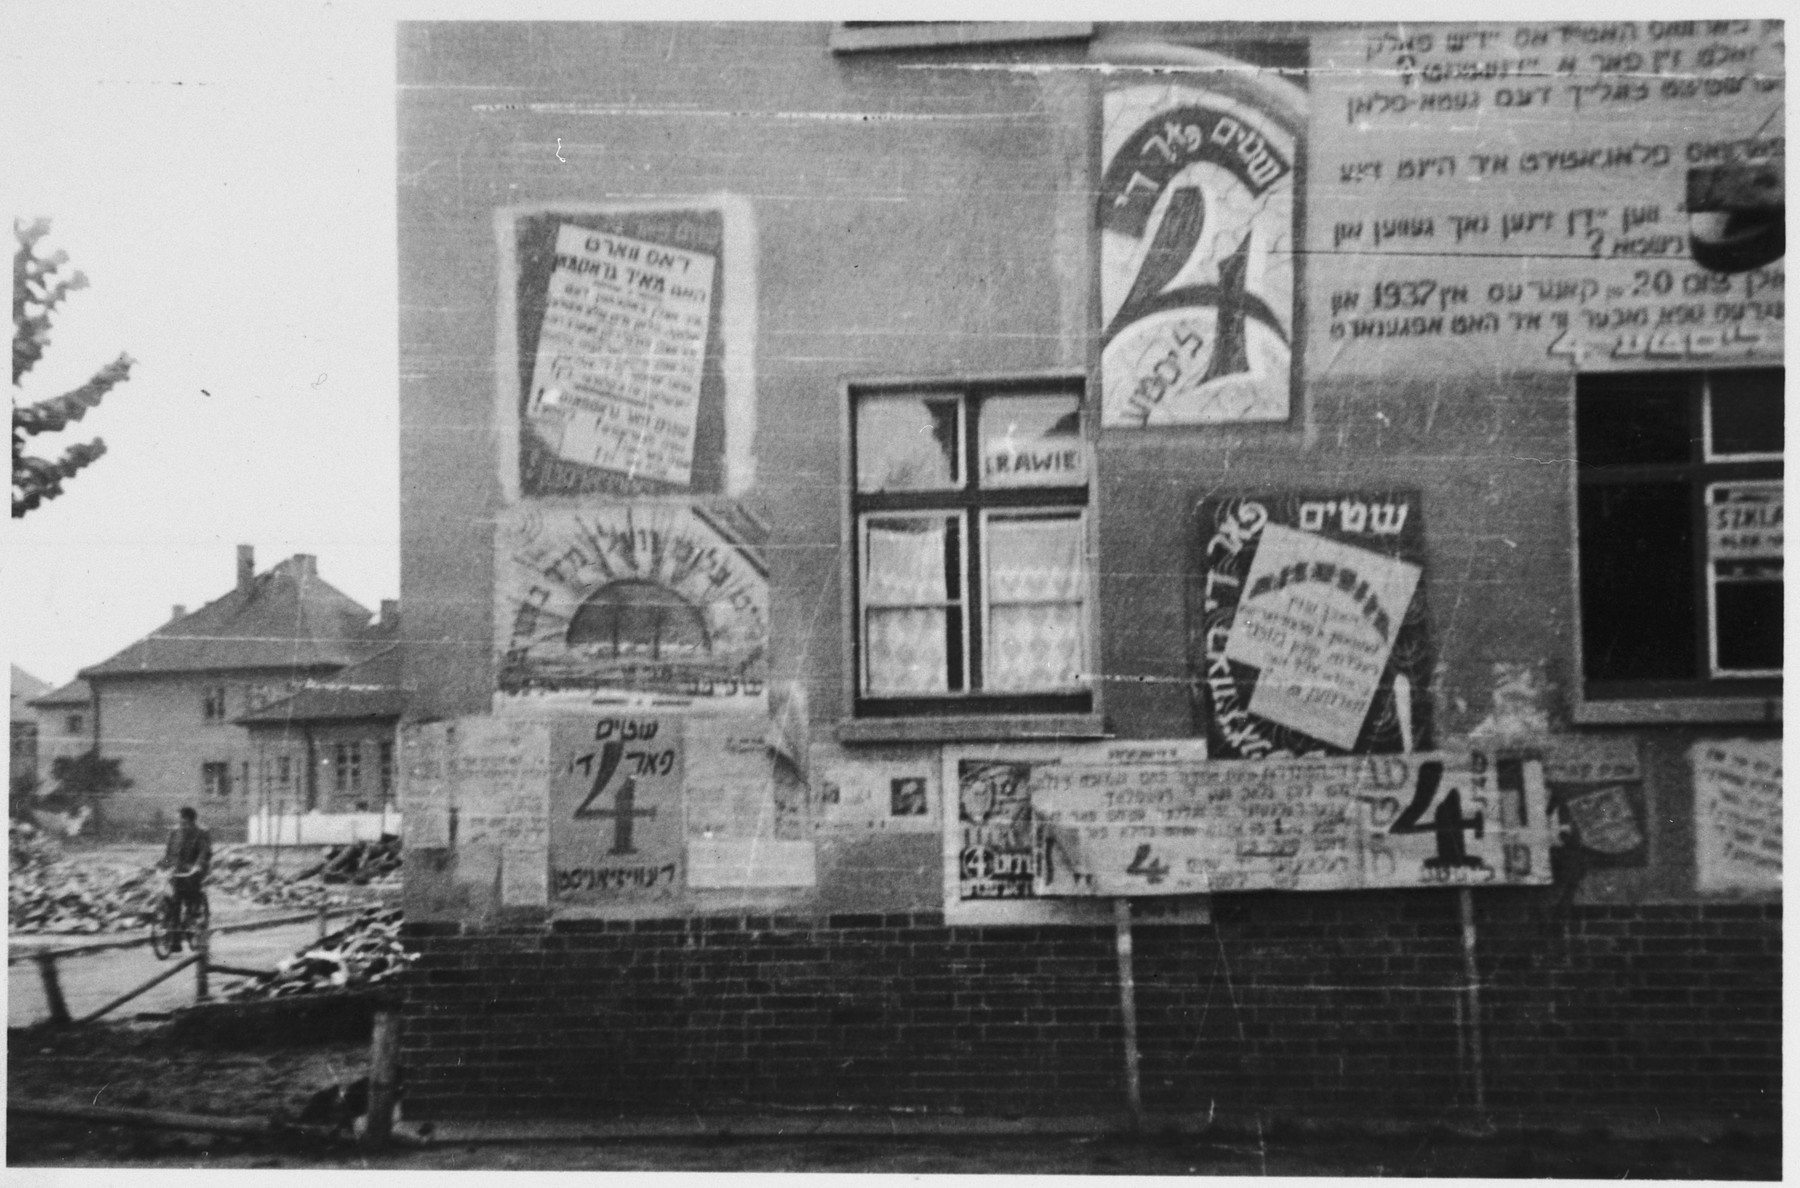 Assorted election signs are posted on the outside wall of a barracks in the Bergen-Belsen displaced persons camp.